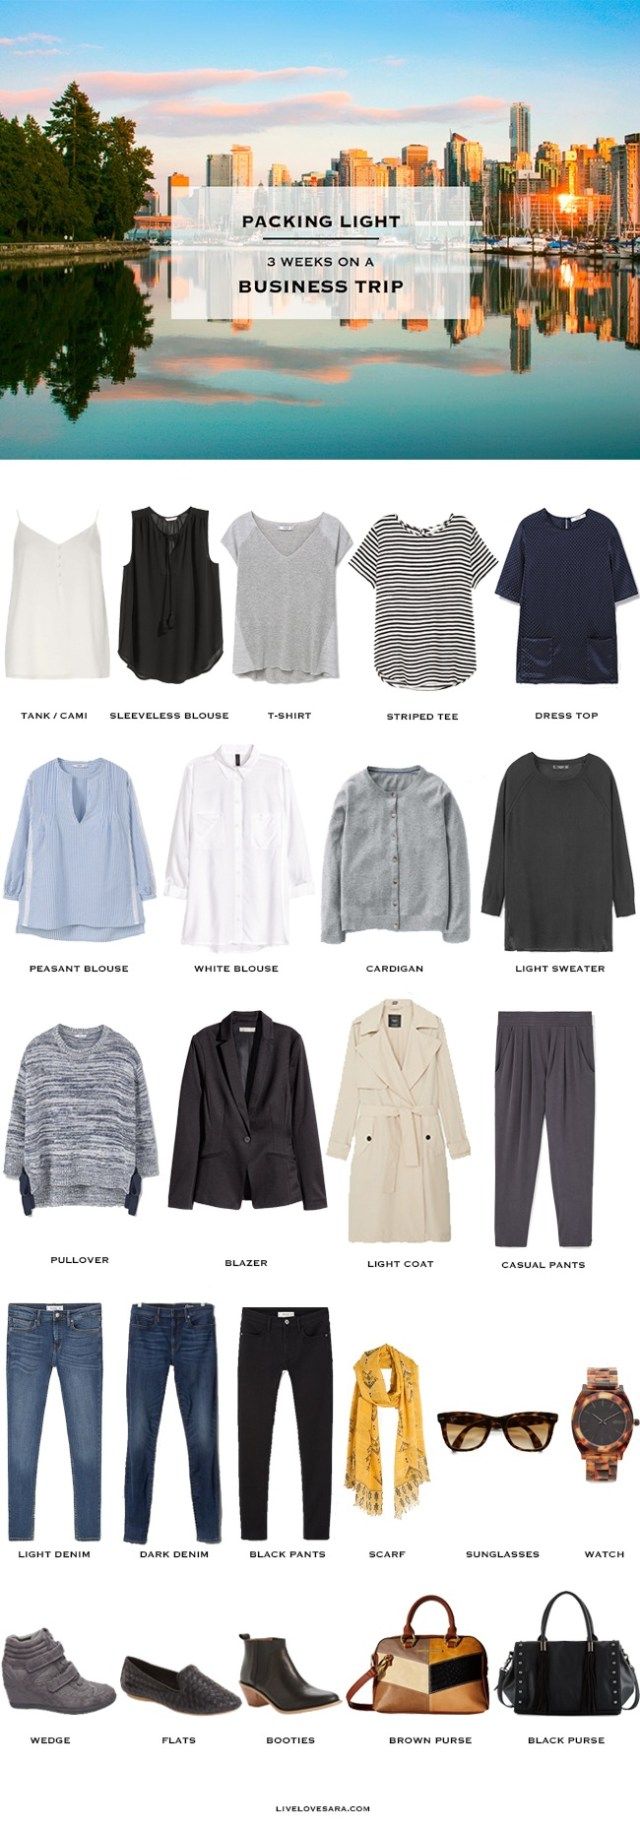 What to pack for a Business Trip 3 Weeks Casual Chic #capsule #workcapsule #businesstrip #workwardrobe